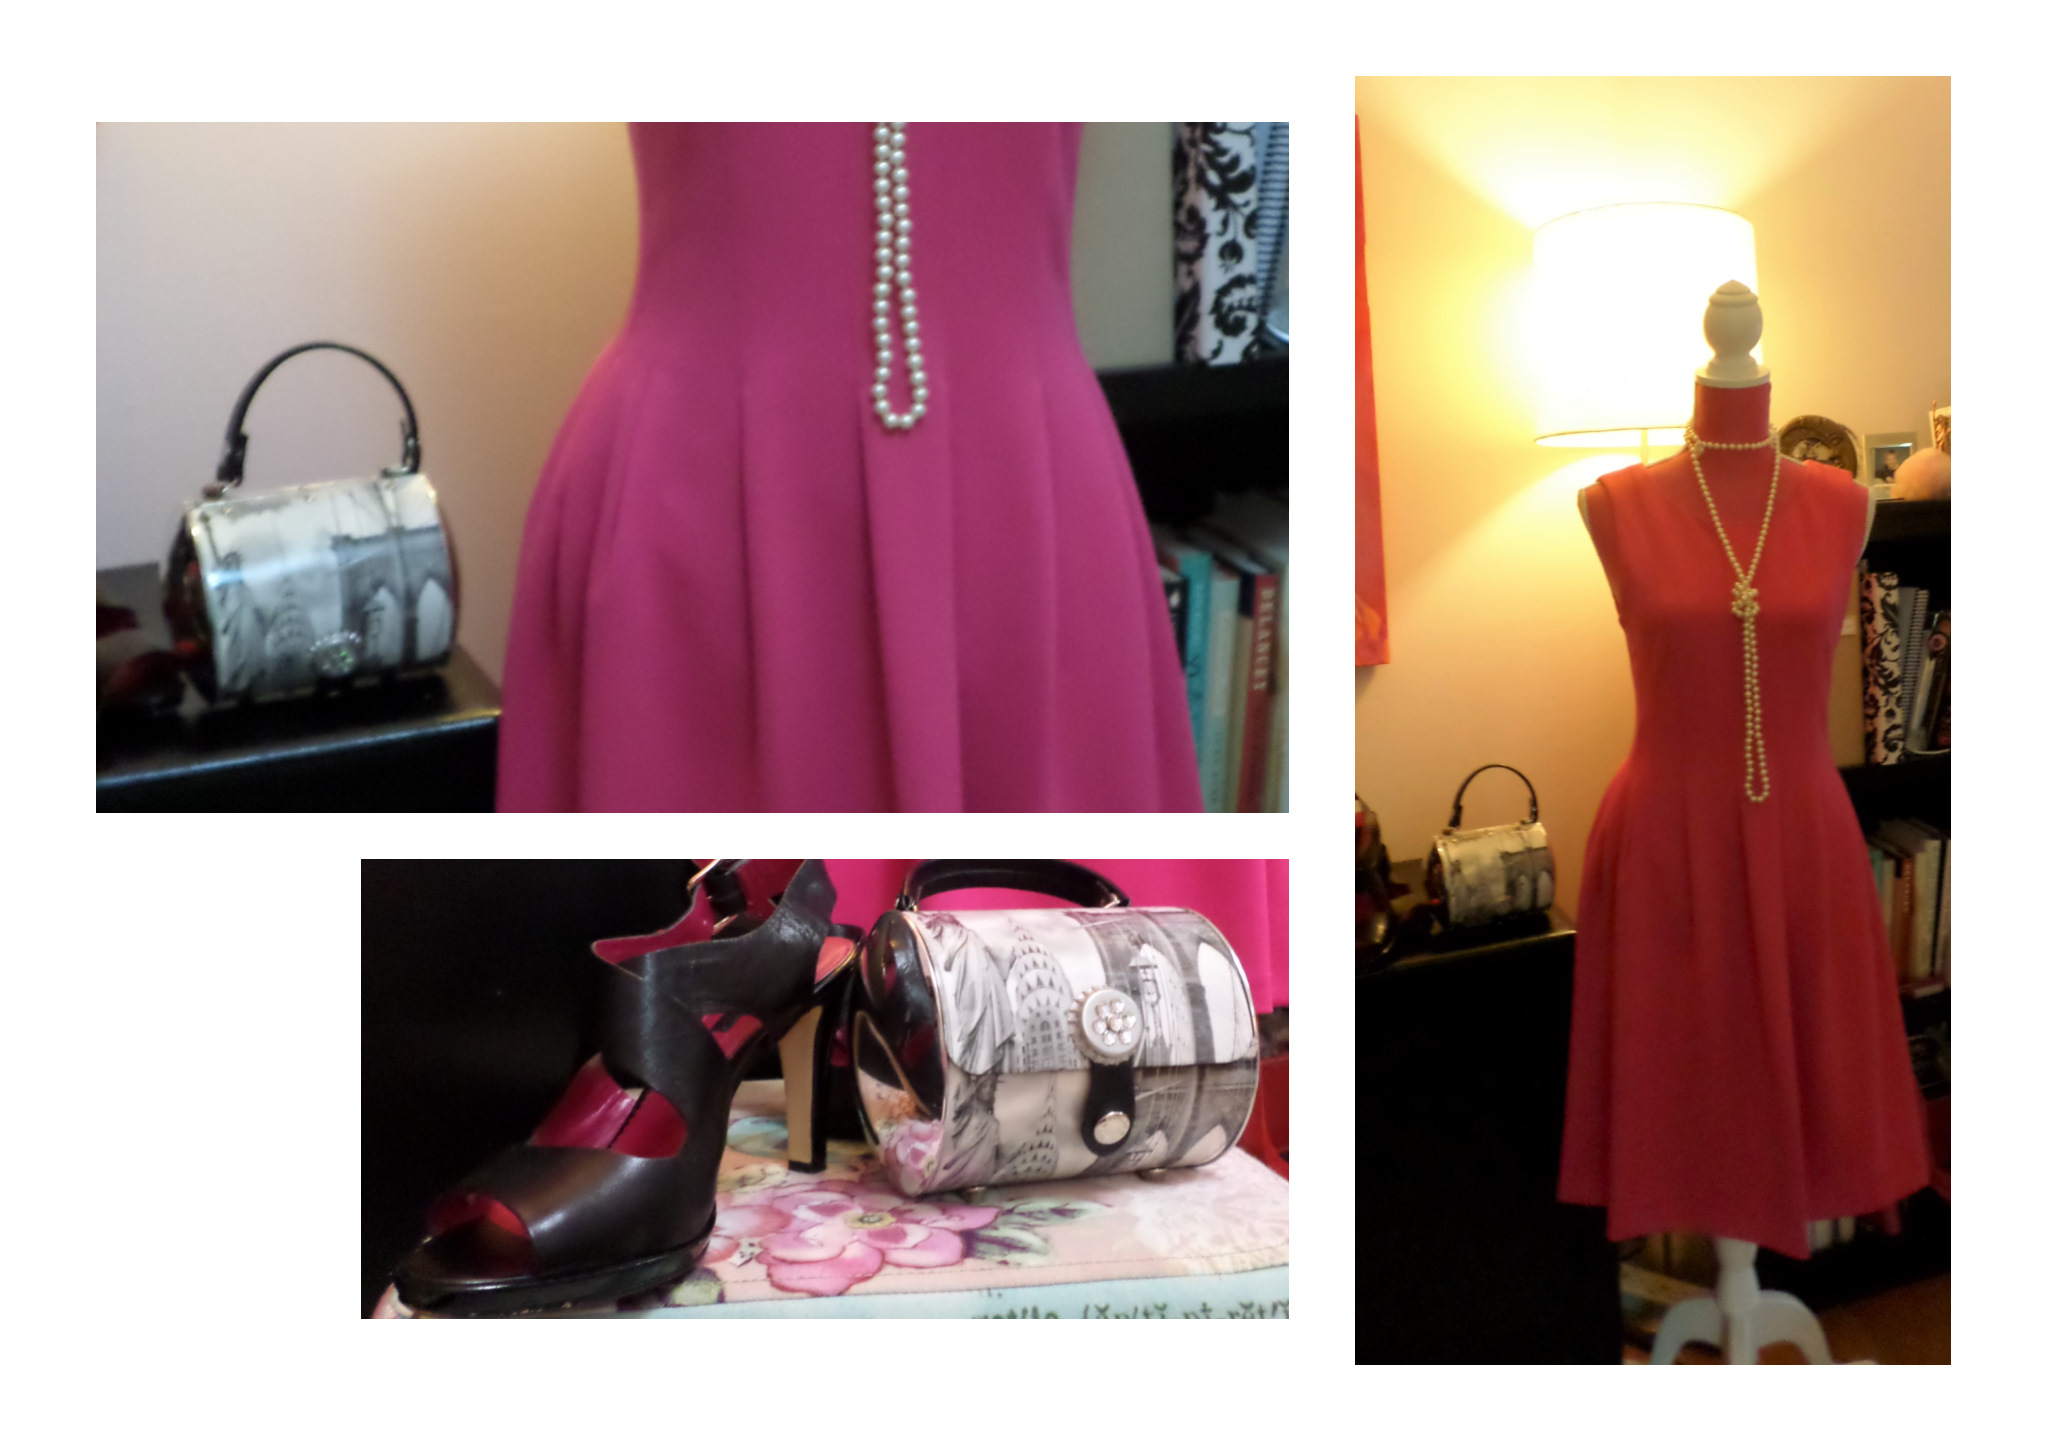 A closer look at the pleating and my shoes and handbag as well